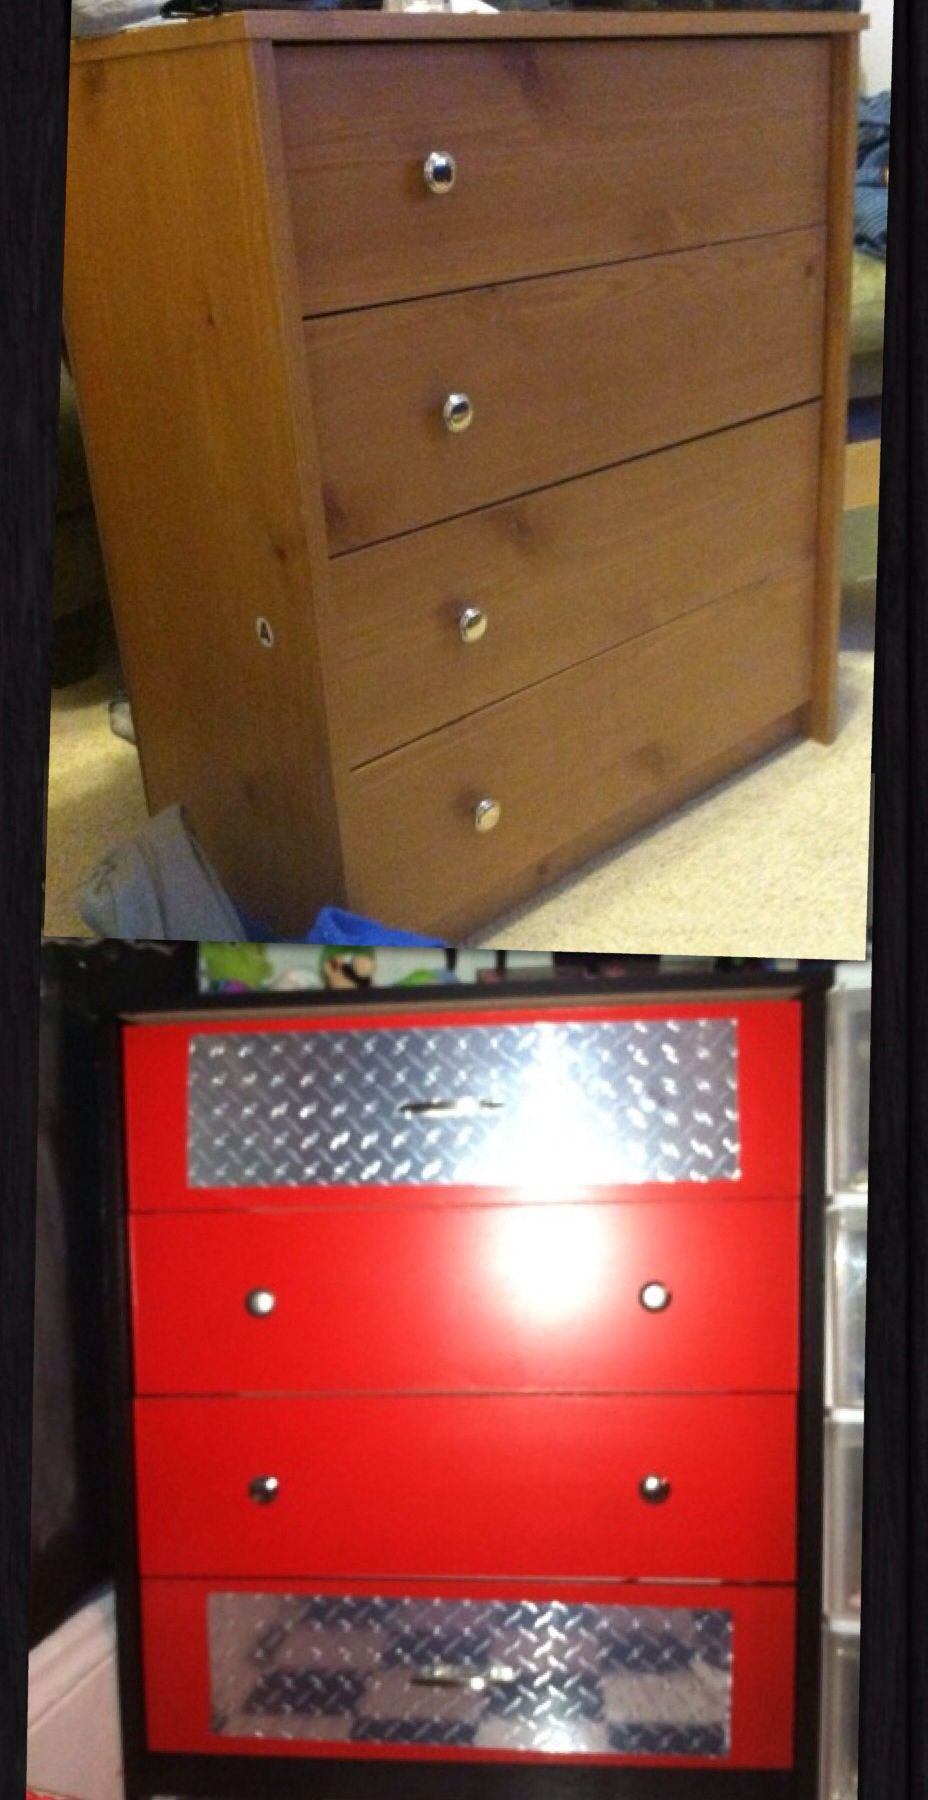 Wood Effect Kids Playroom Bedroom Storage Chest Trunk: Before And After Of A Dresser We Turned Into A Snapon